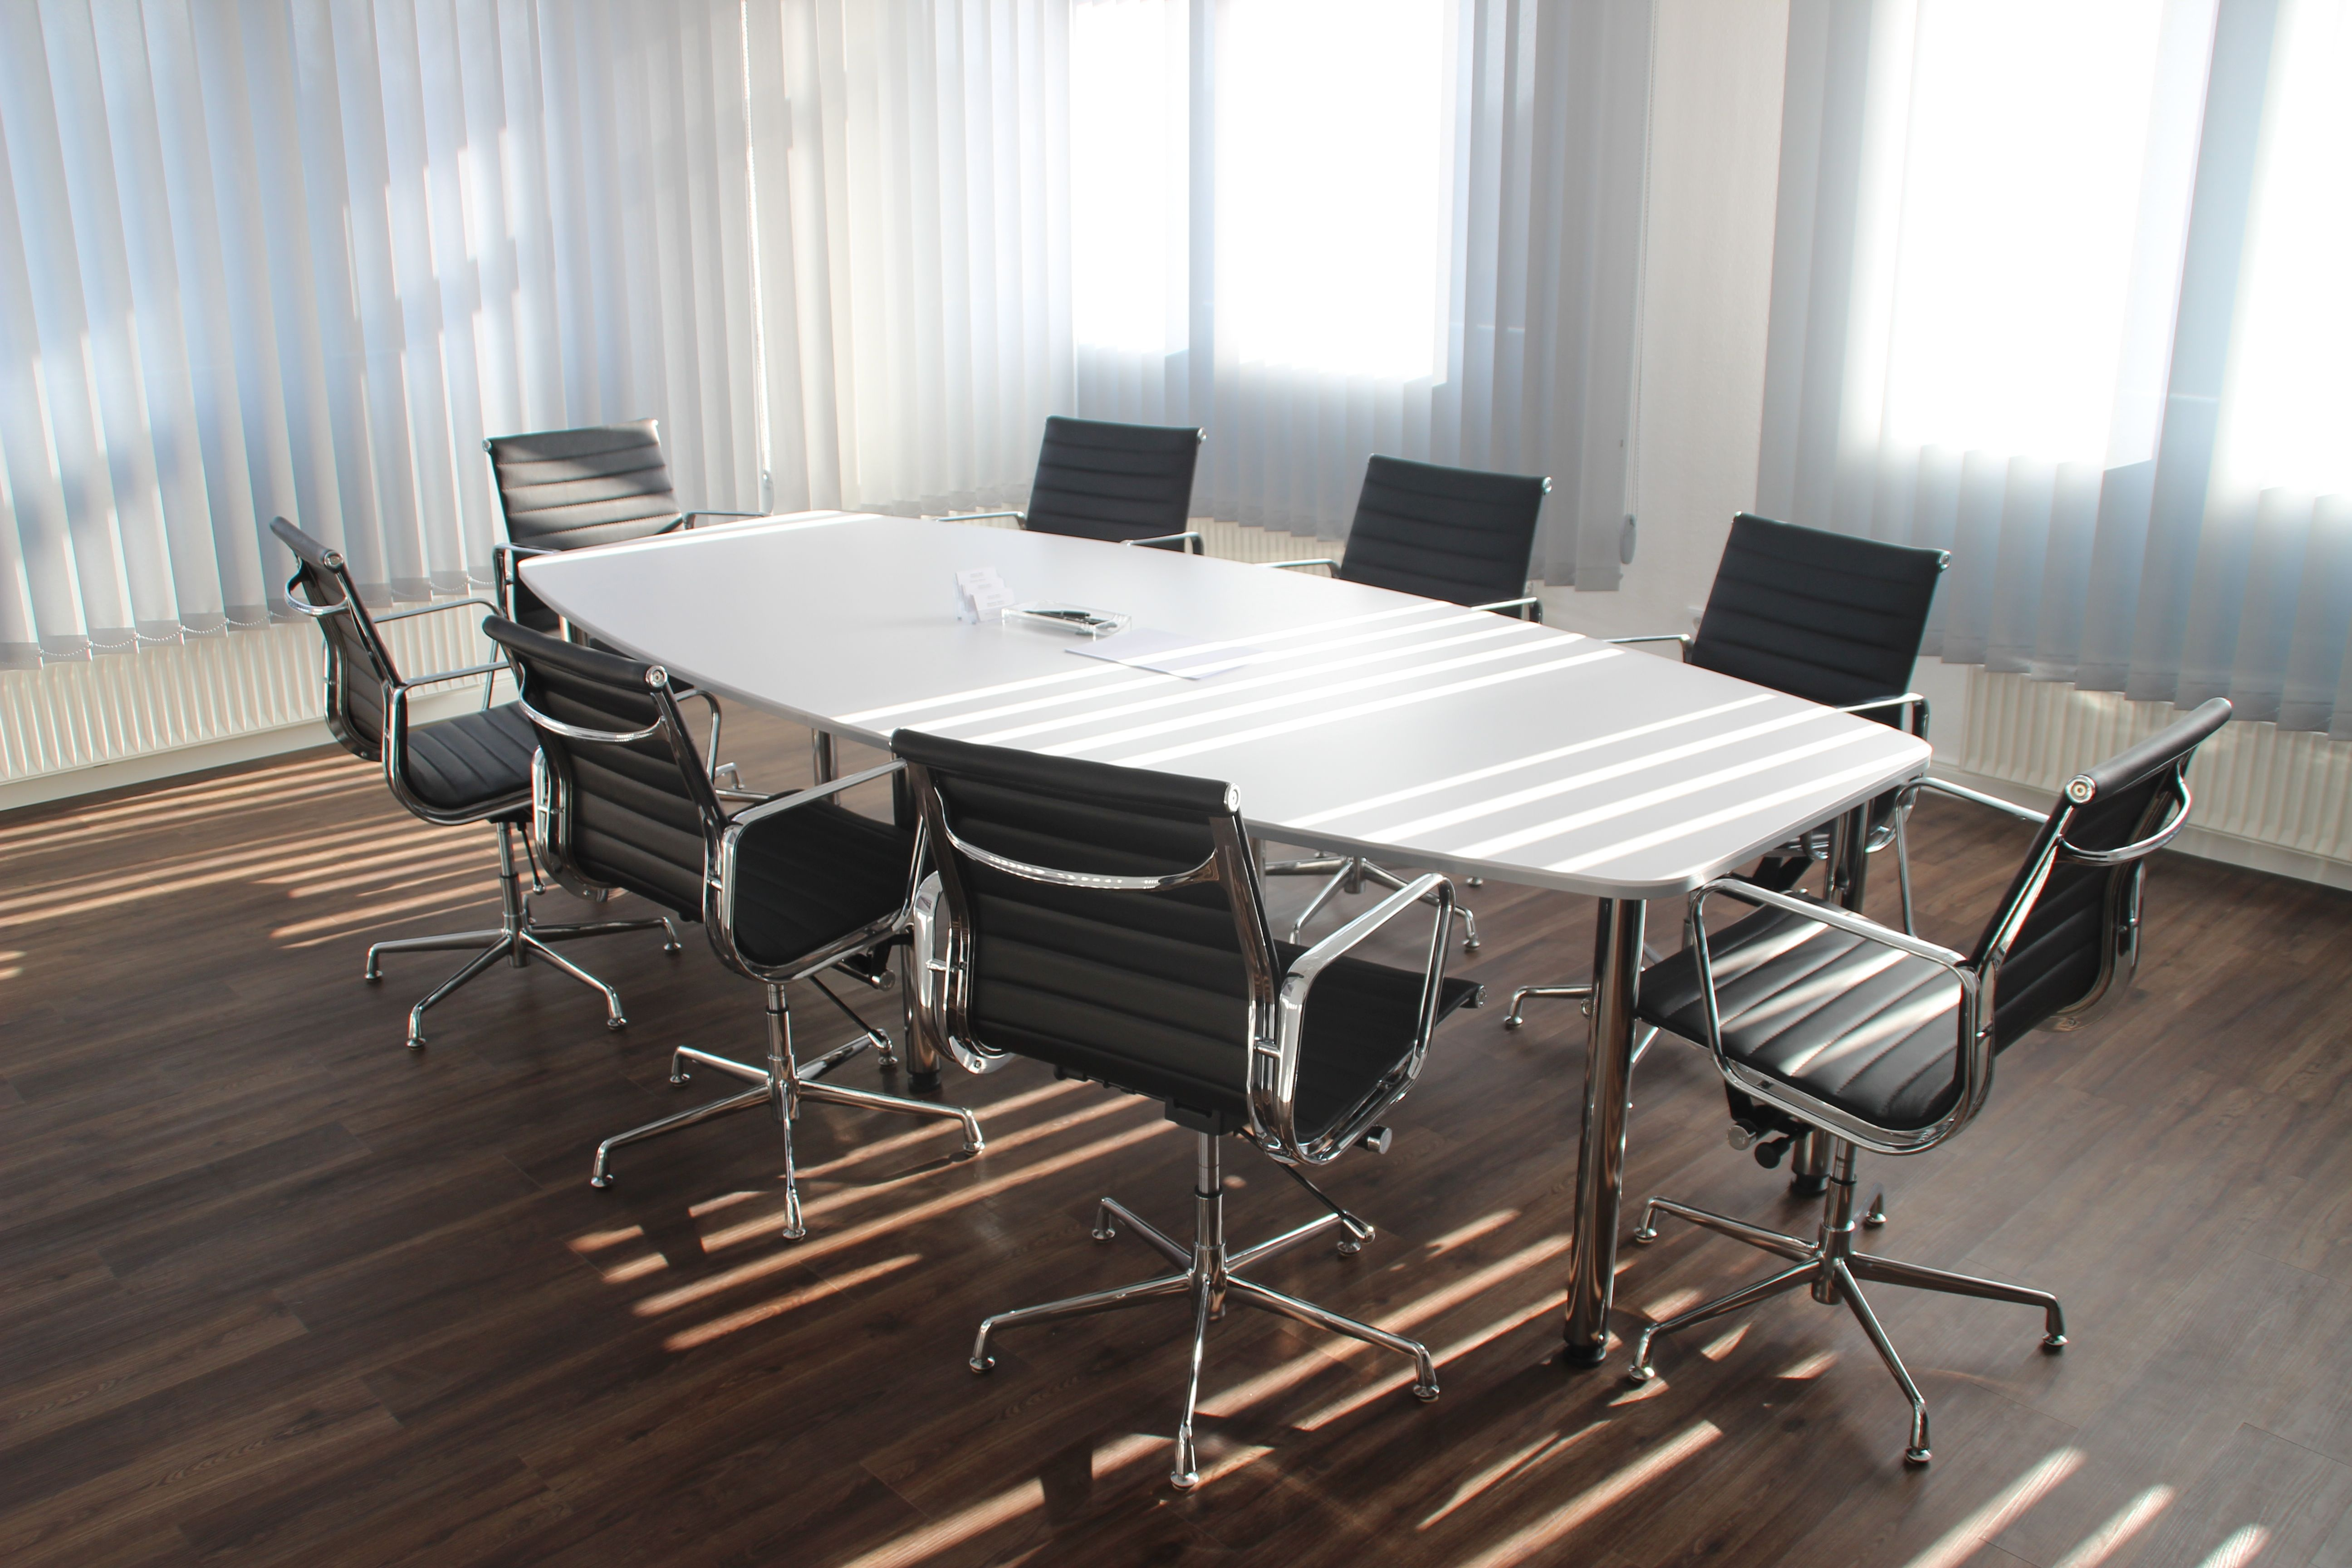 Meeting Room Tables 1000 Beautiful Meeting Room Photos Pexels Free Stock Photos